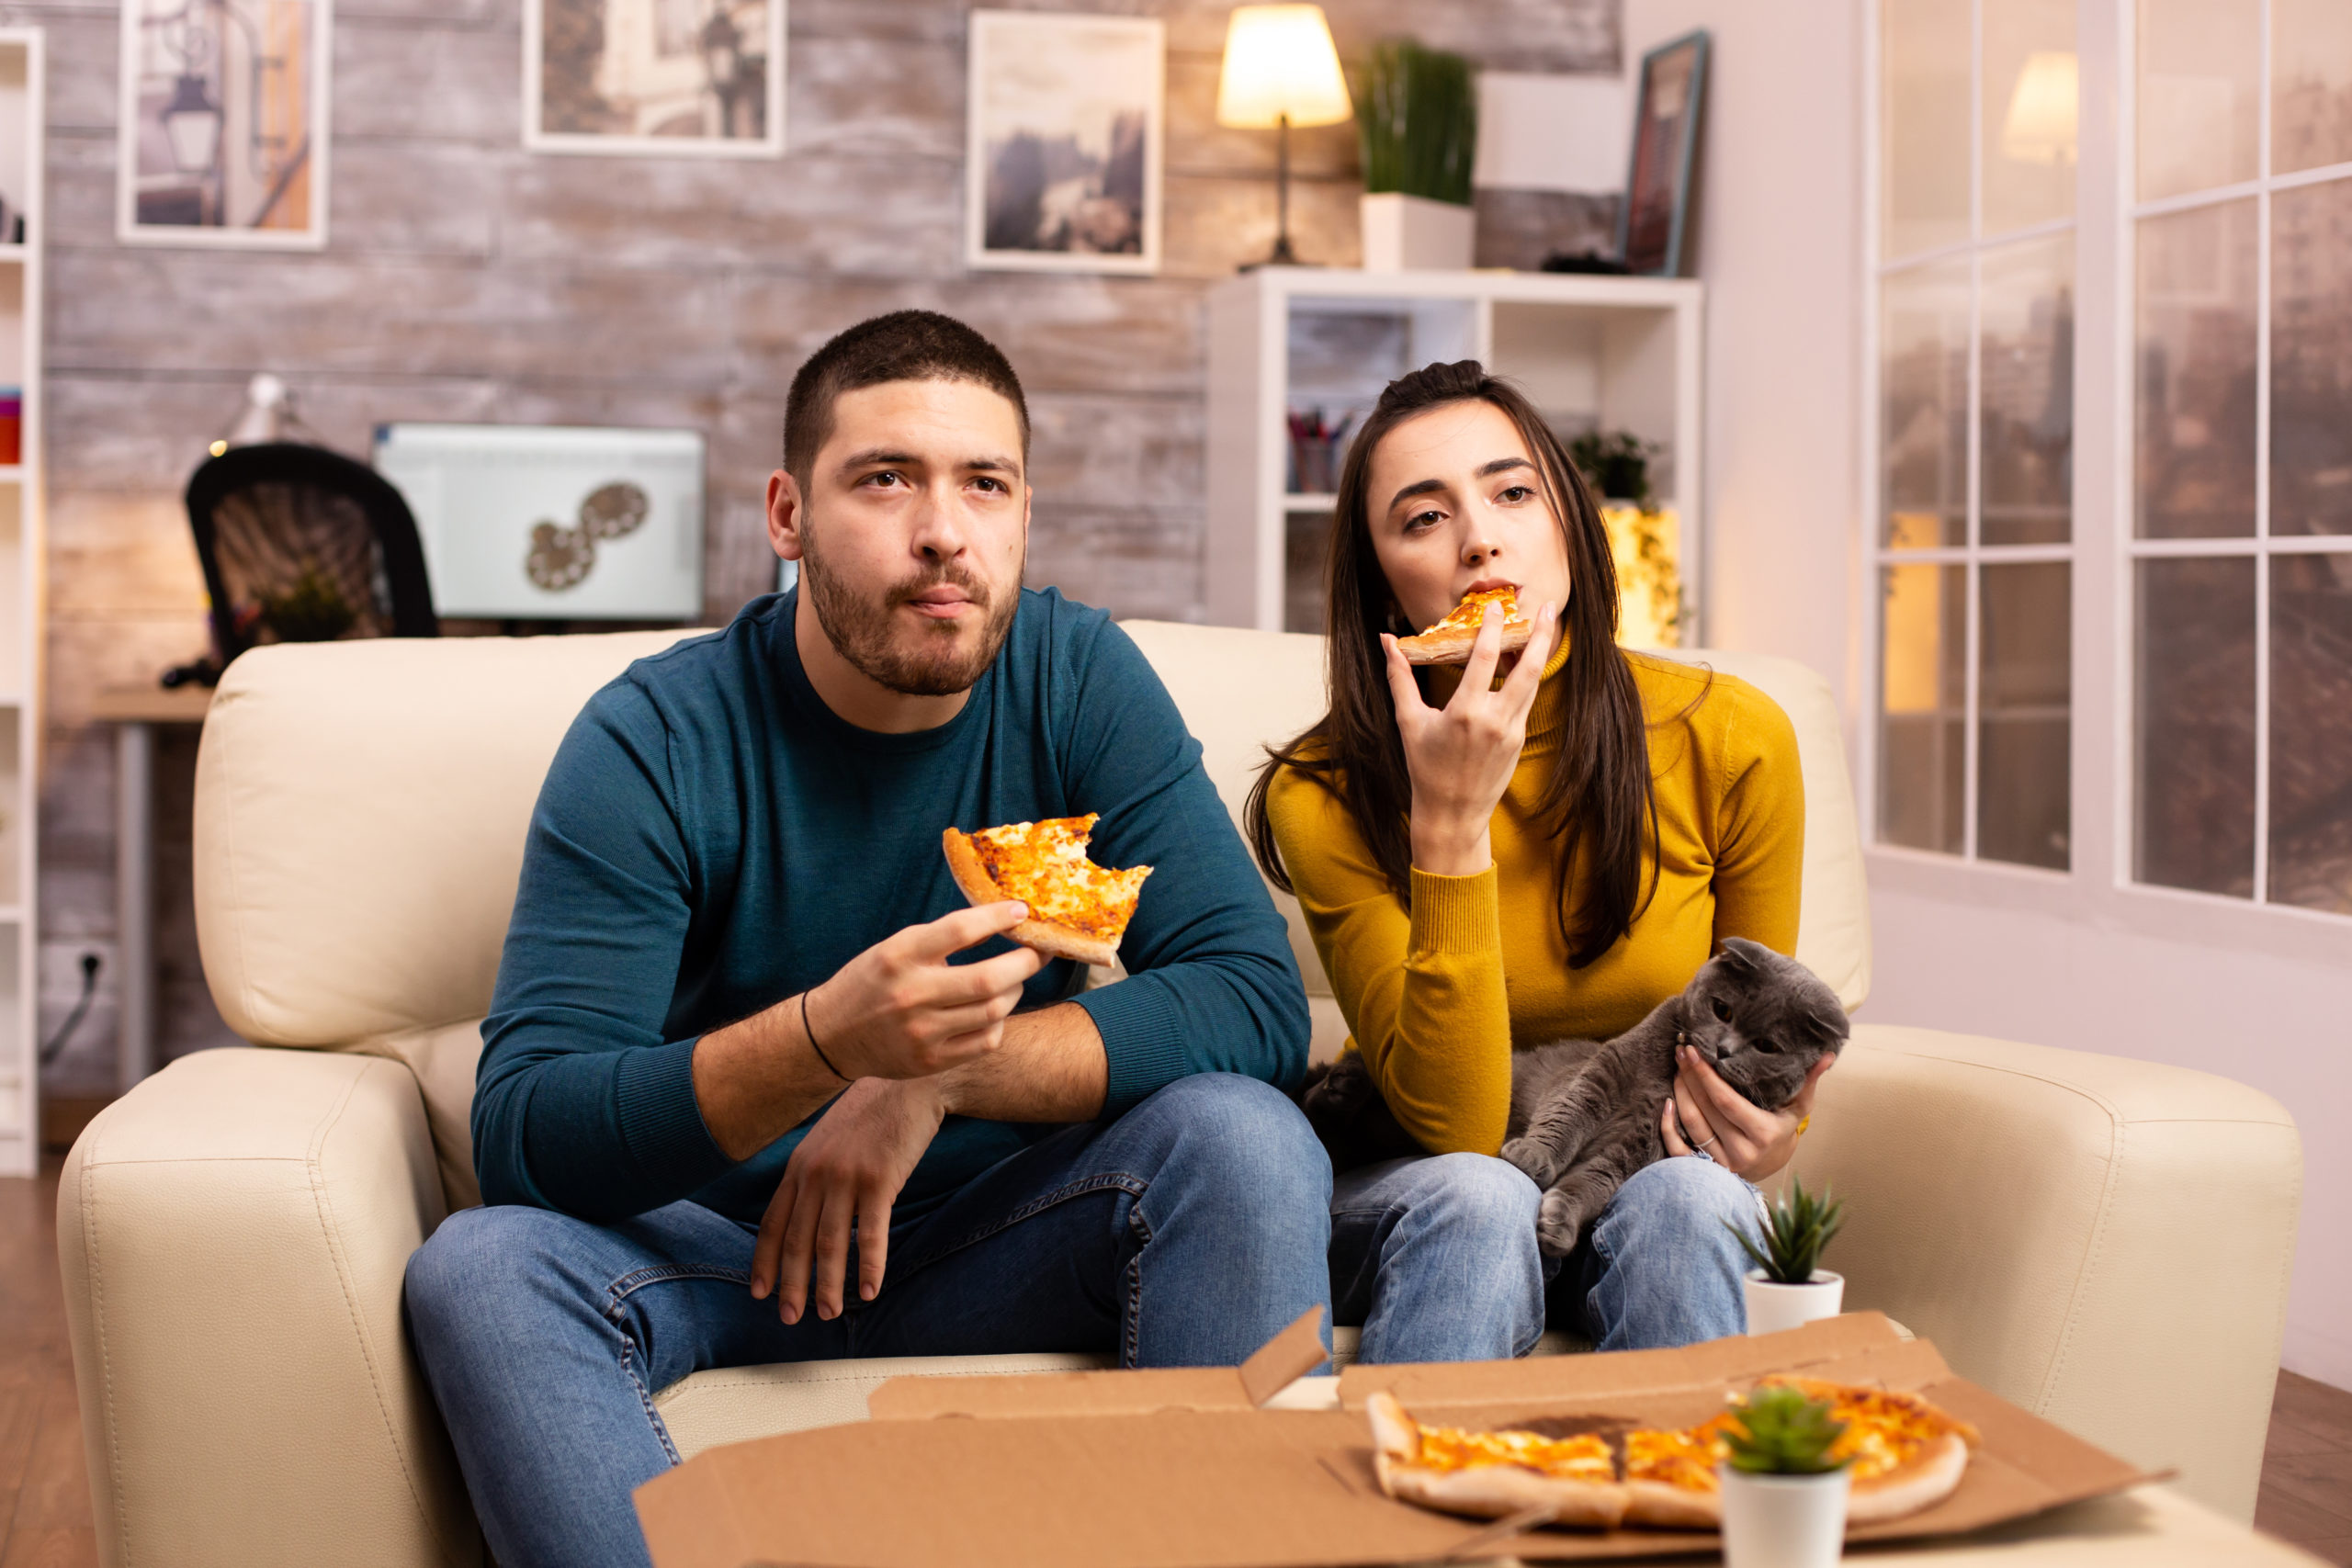 https://elements.envato.com/gorgeous-young-couple-eating-pizza-while-watching--VGVH9Q6